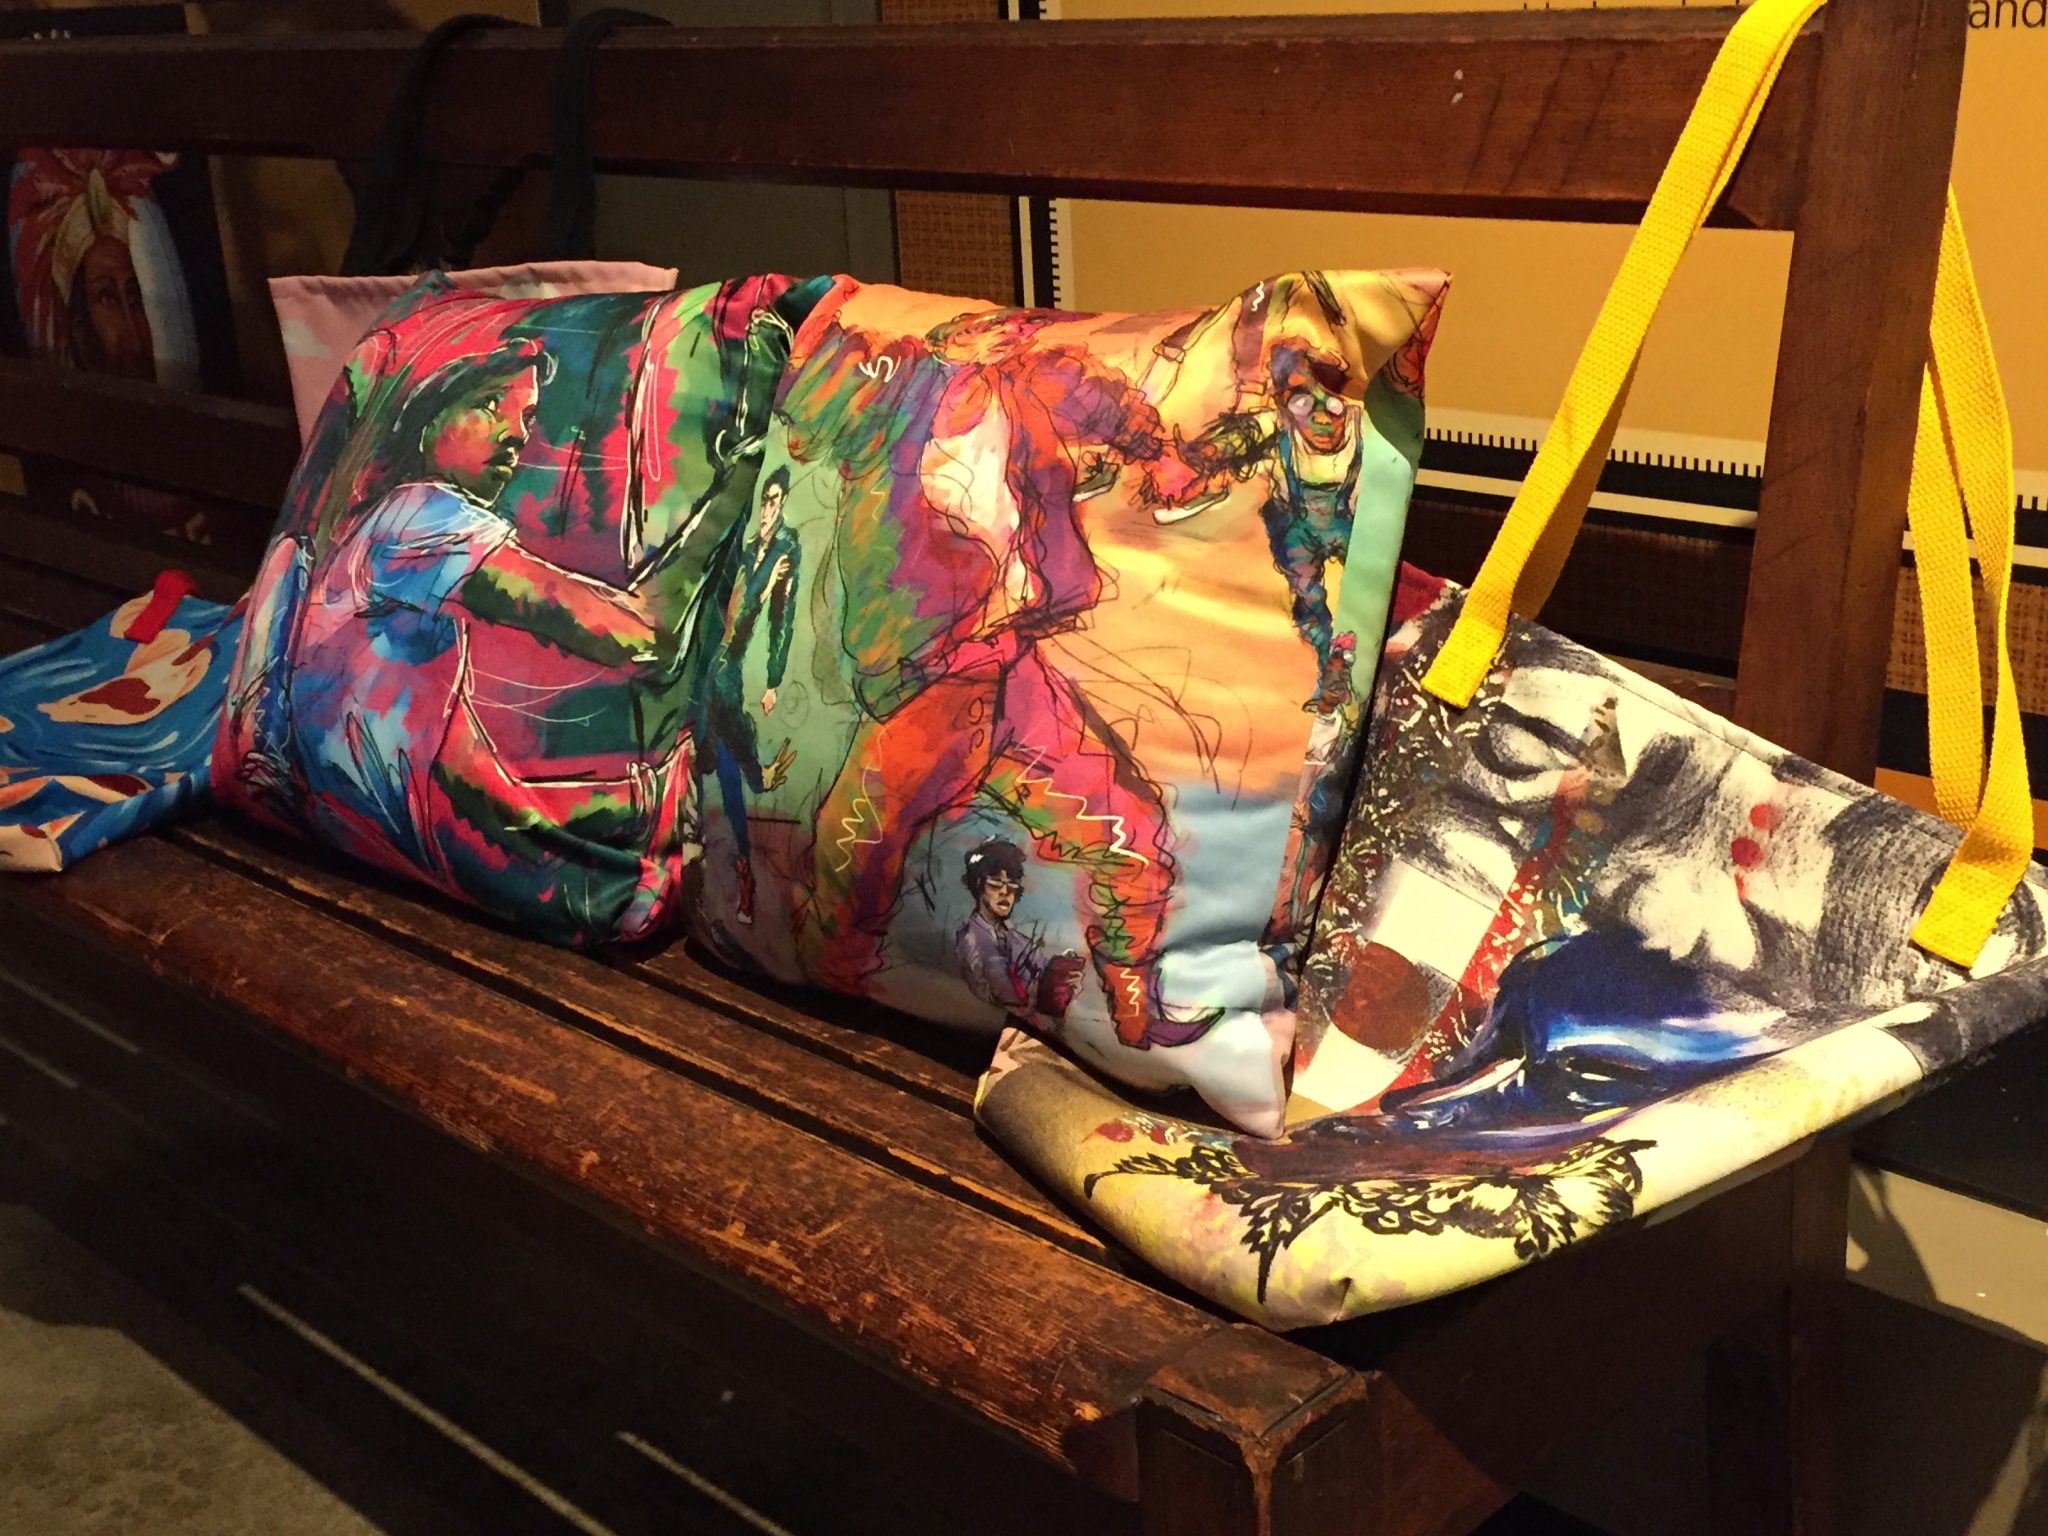 Art pillows and totes by Baltimore Gifted